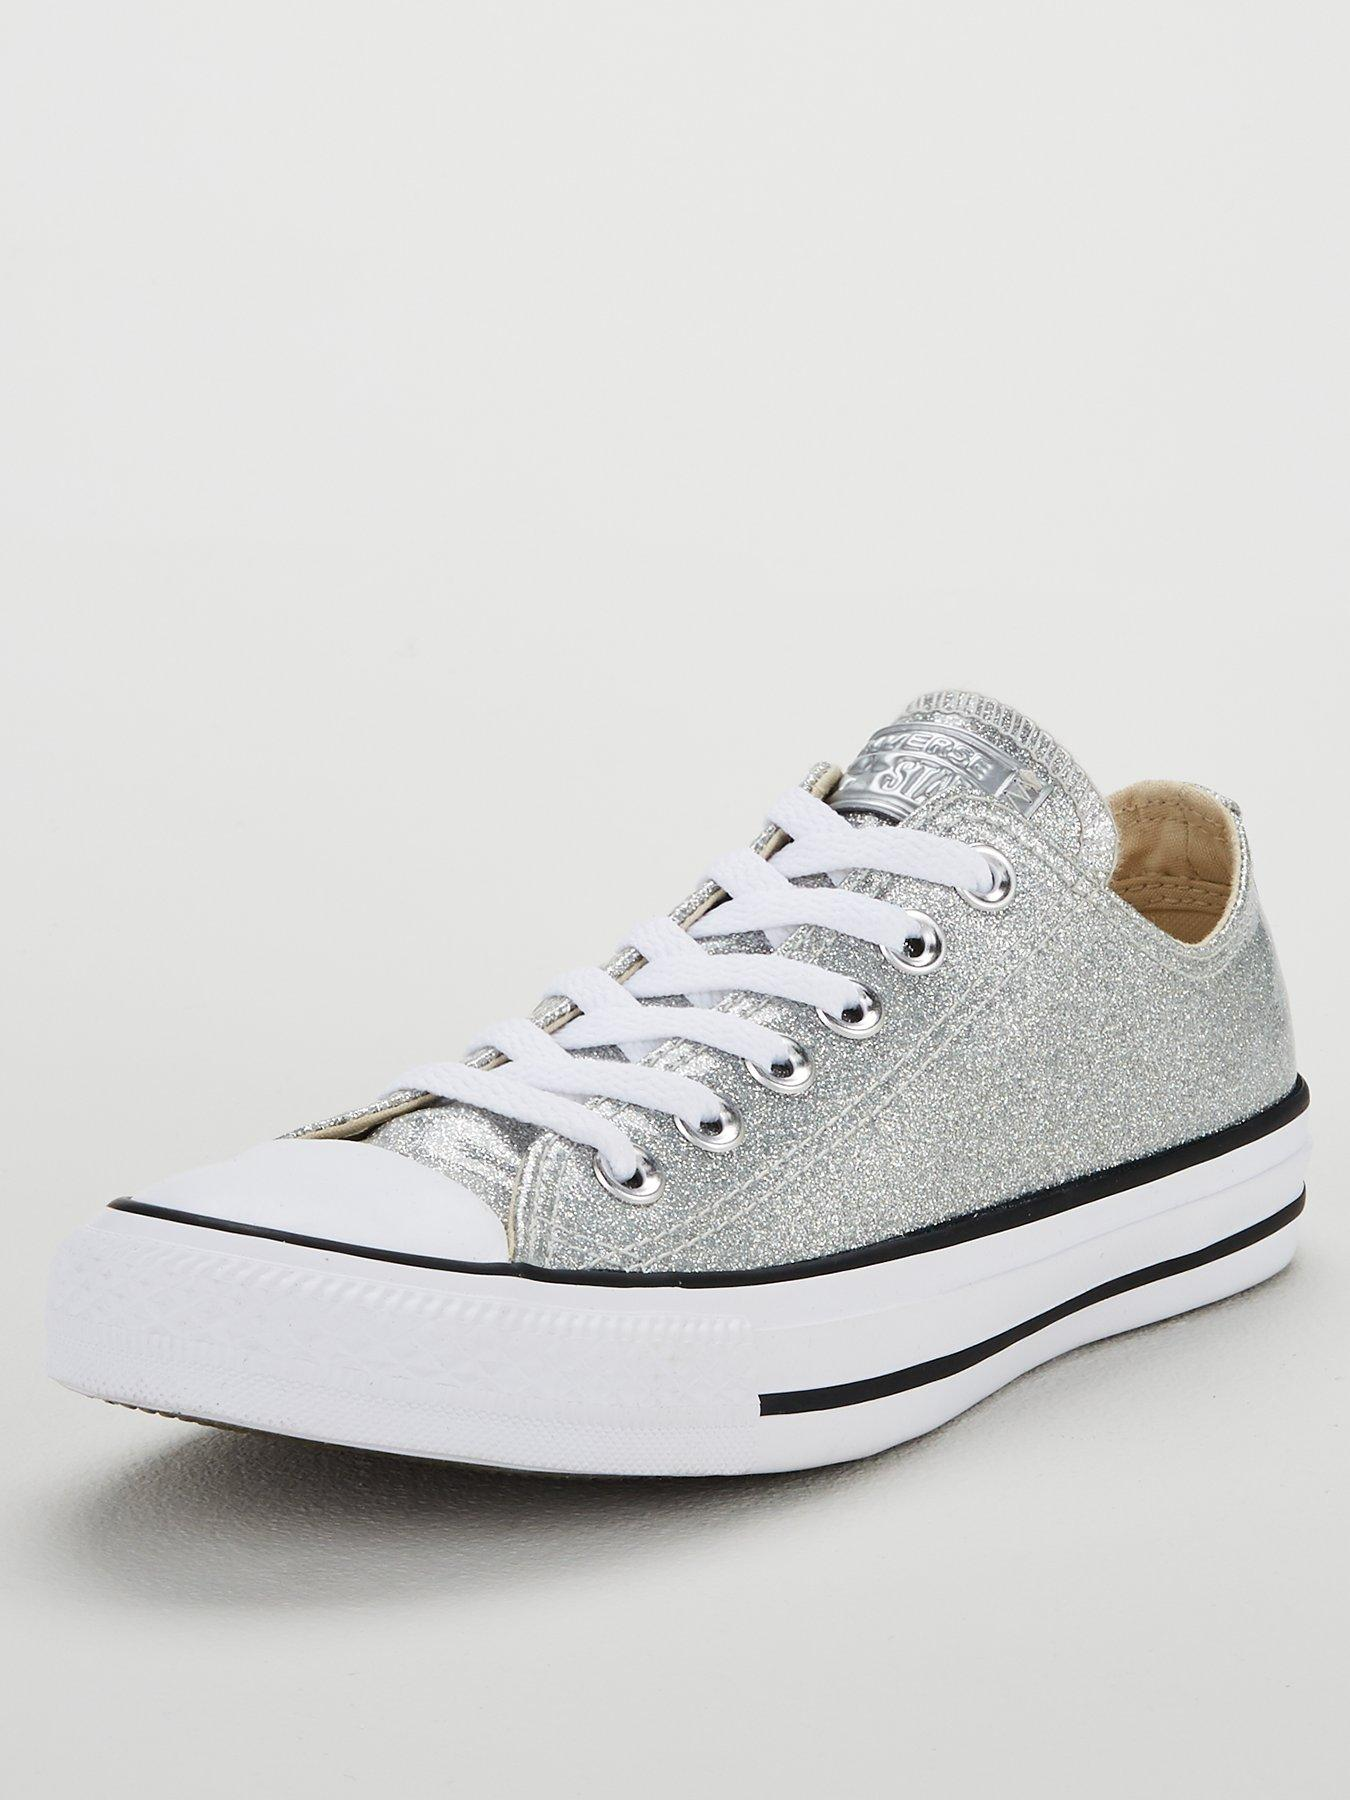 converse uk delivery